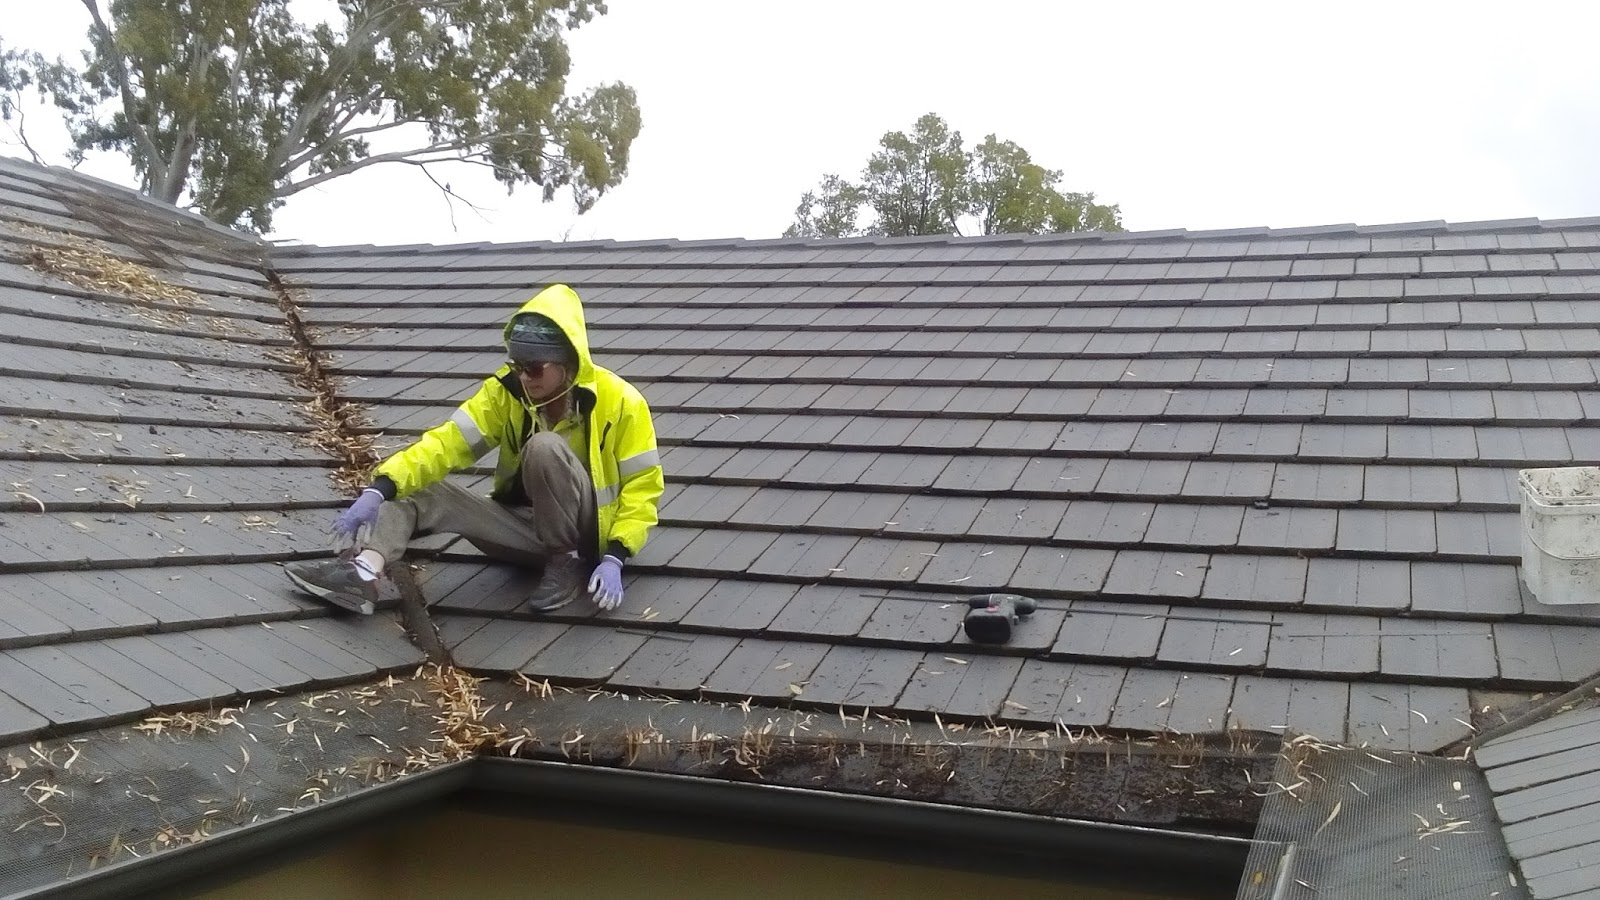 Roof Maintenance by Gutter Guard Installation